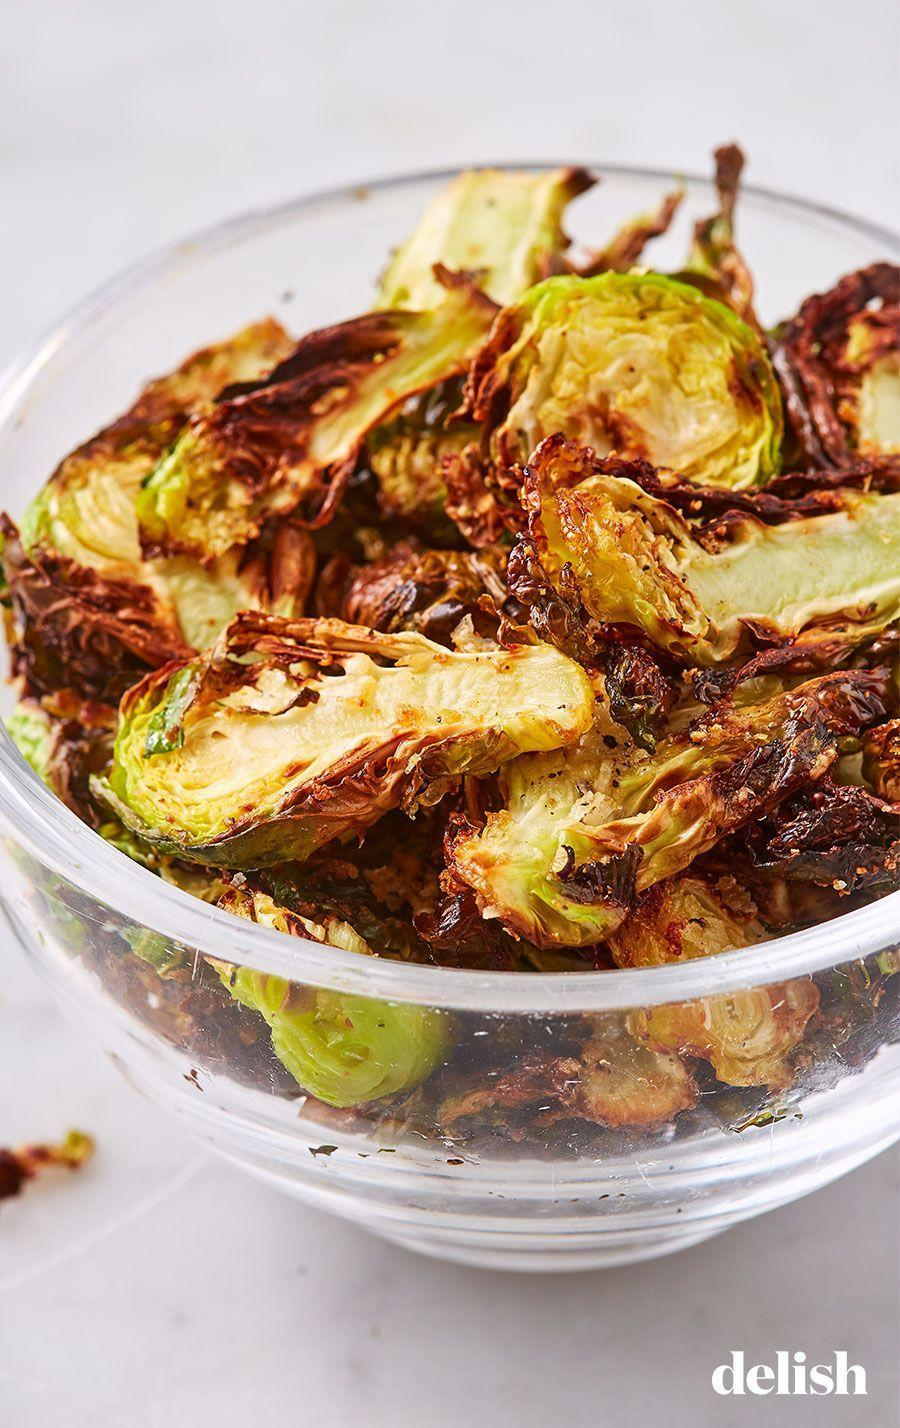 """<p>That garlic parmesan dip is E-V-E-R-Y-T-H-I-N-G. </p><p>Get the recipe from <a href=""""https://www.delish.com/cooking/recipe-ideas/a19673558/best-brussels-sprout-chips-recipe/"""" rel=""""nofollow noopener"""" target=""""_blank"""" data-ylk=""""slk:Delish"""" class=""""link rapid-noclick-resp"""">Delish</a>.</p>"""